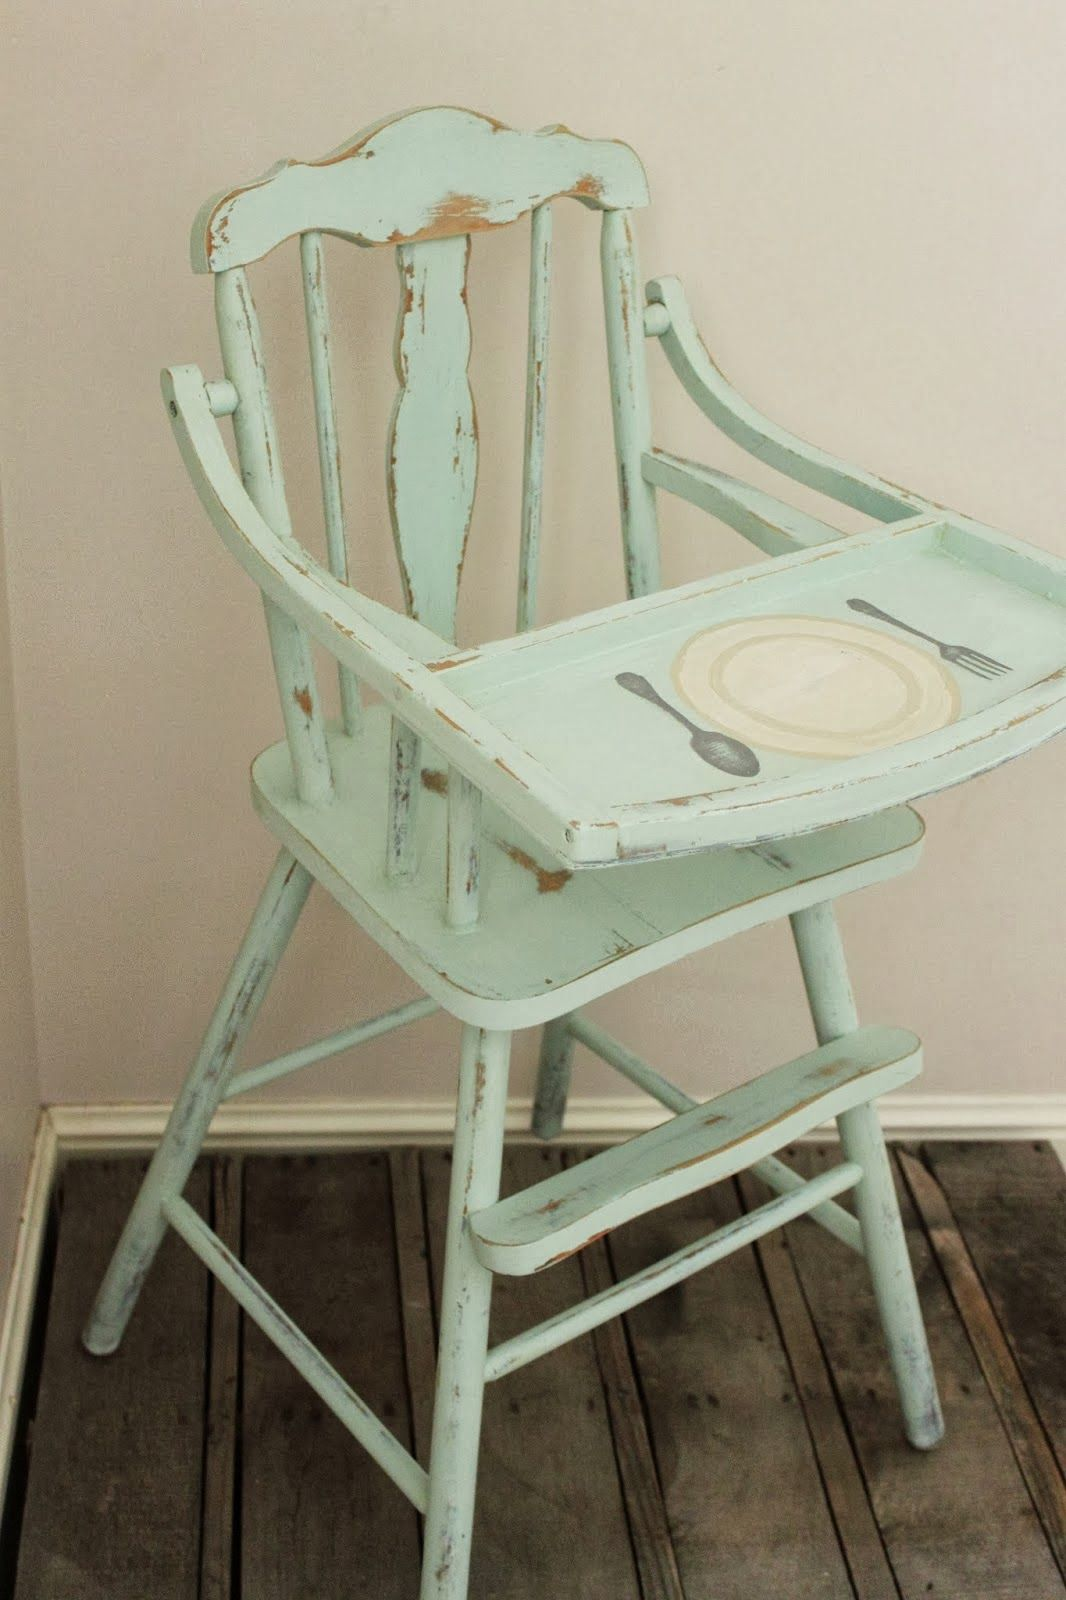 Painted Vintage High Chair I Like The Idea To Paint On The